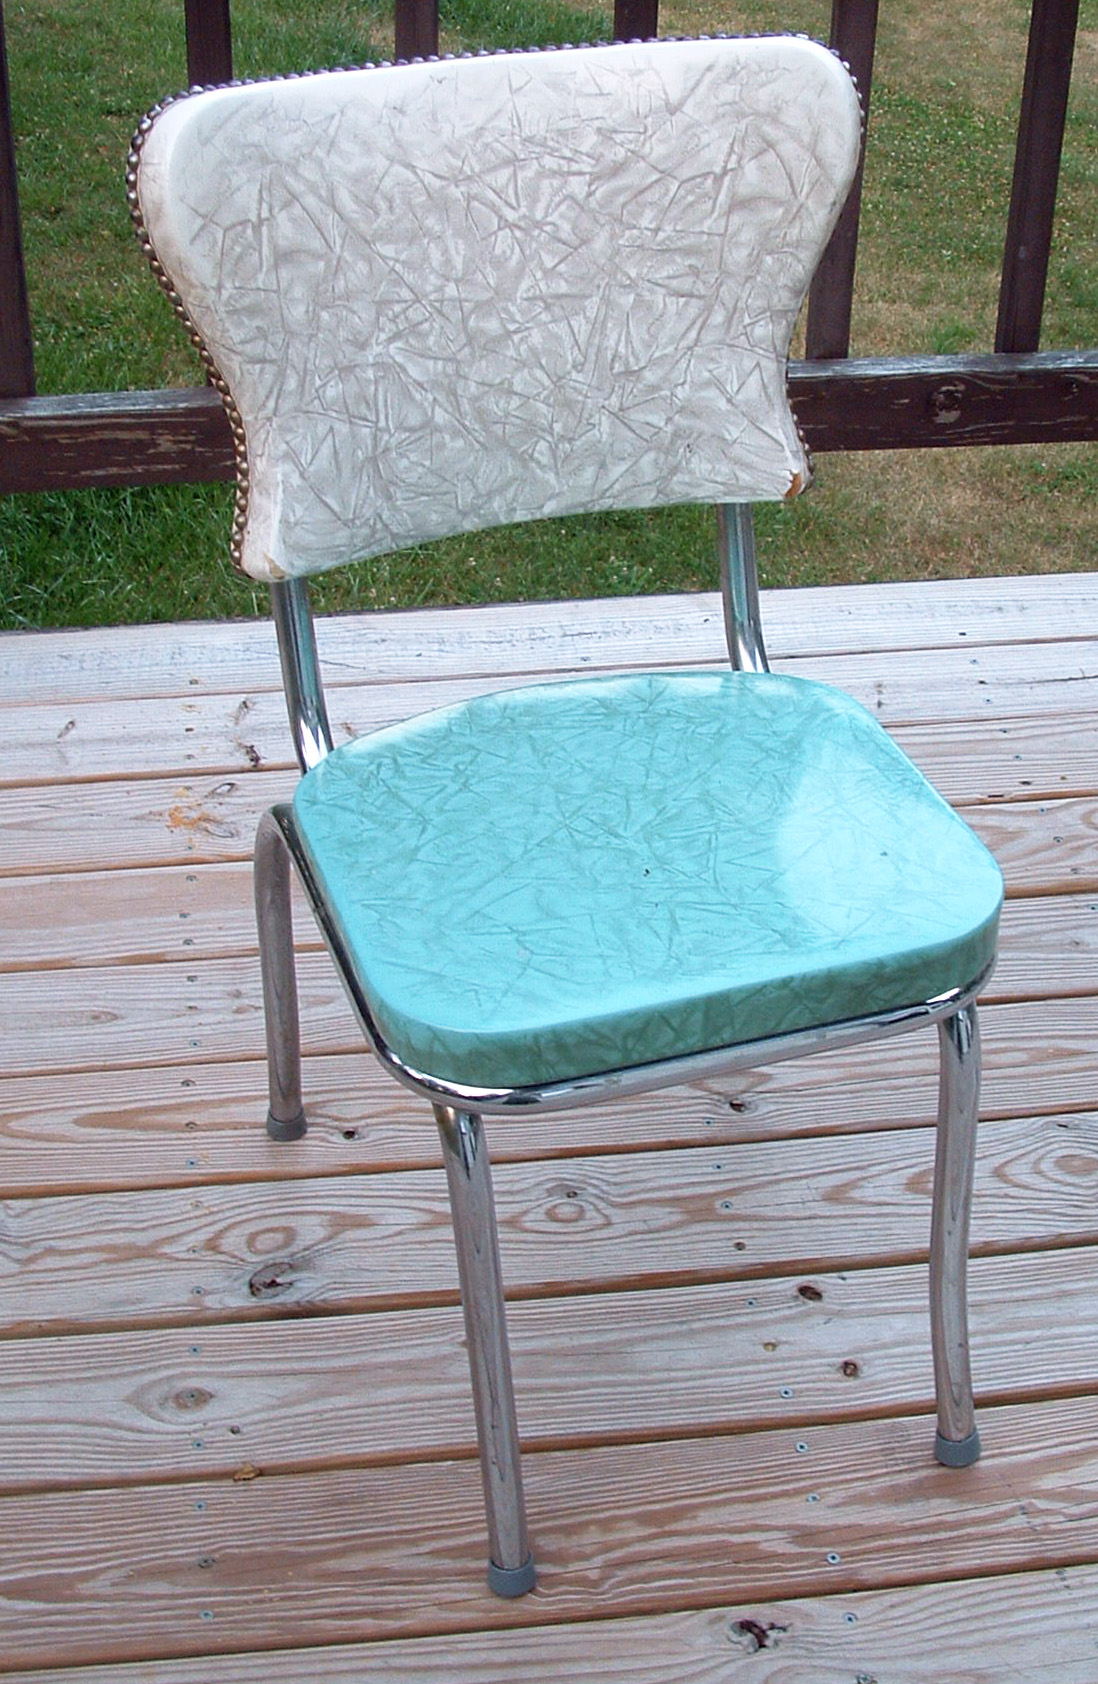 crafty challenge 9 kitchen chair re upholstery turquoise kitchen chairs Original chair before re upholstery